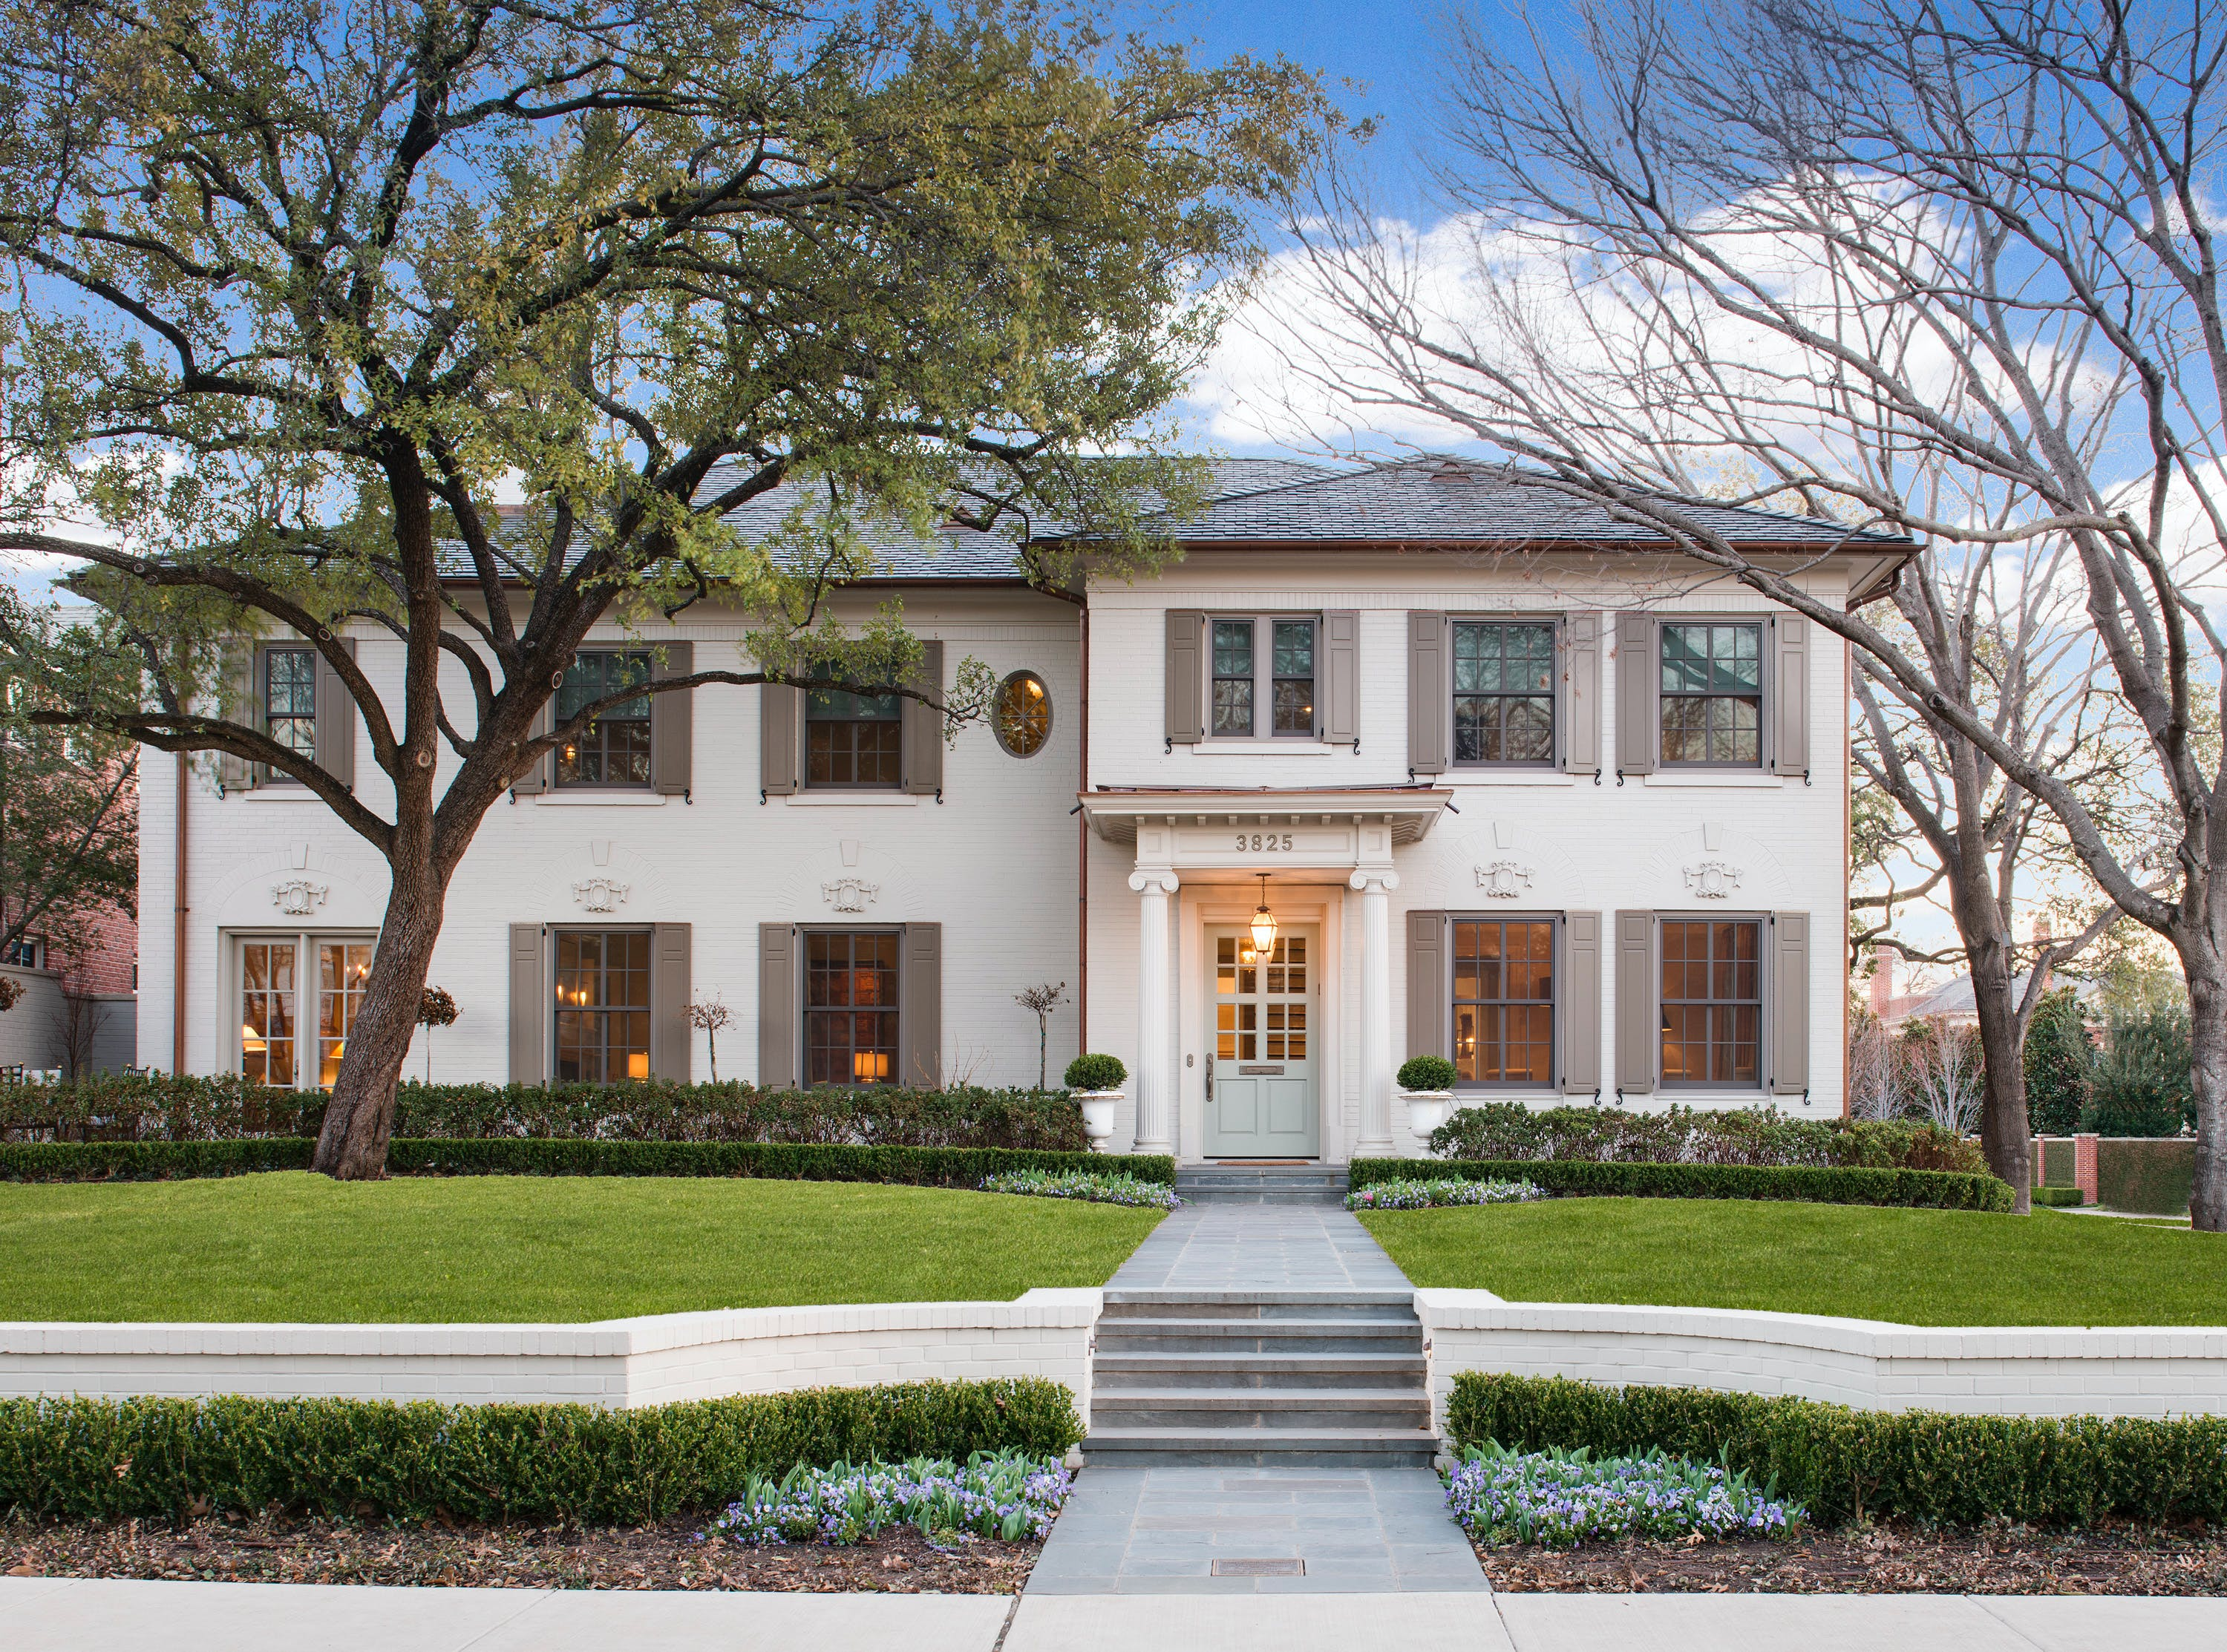 home tour park cities historic society dallas spring events activities